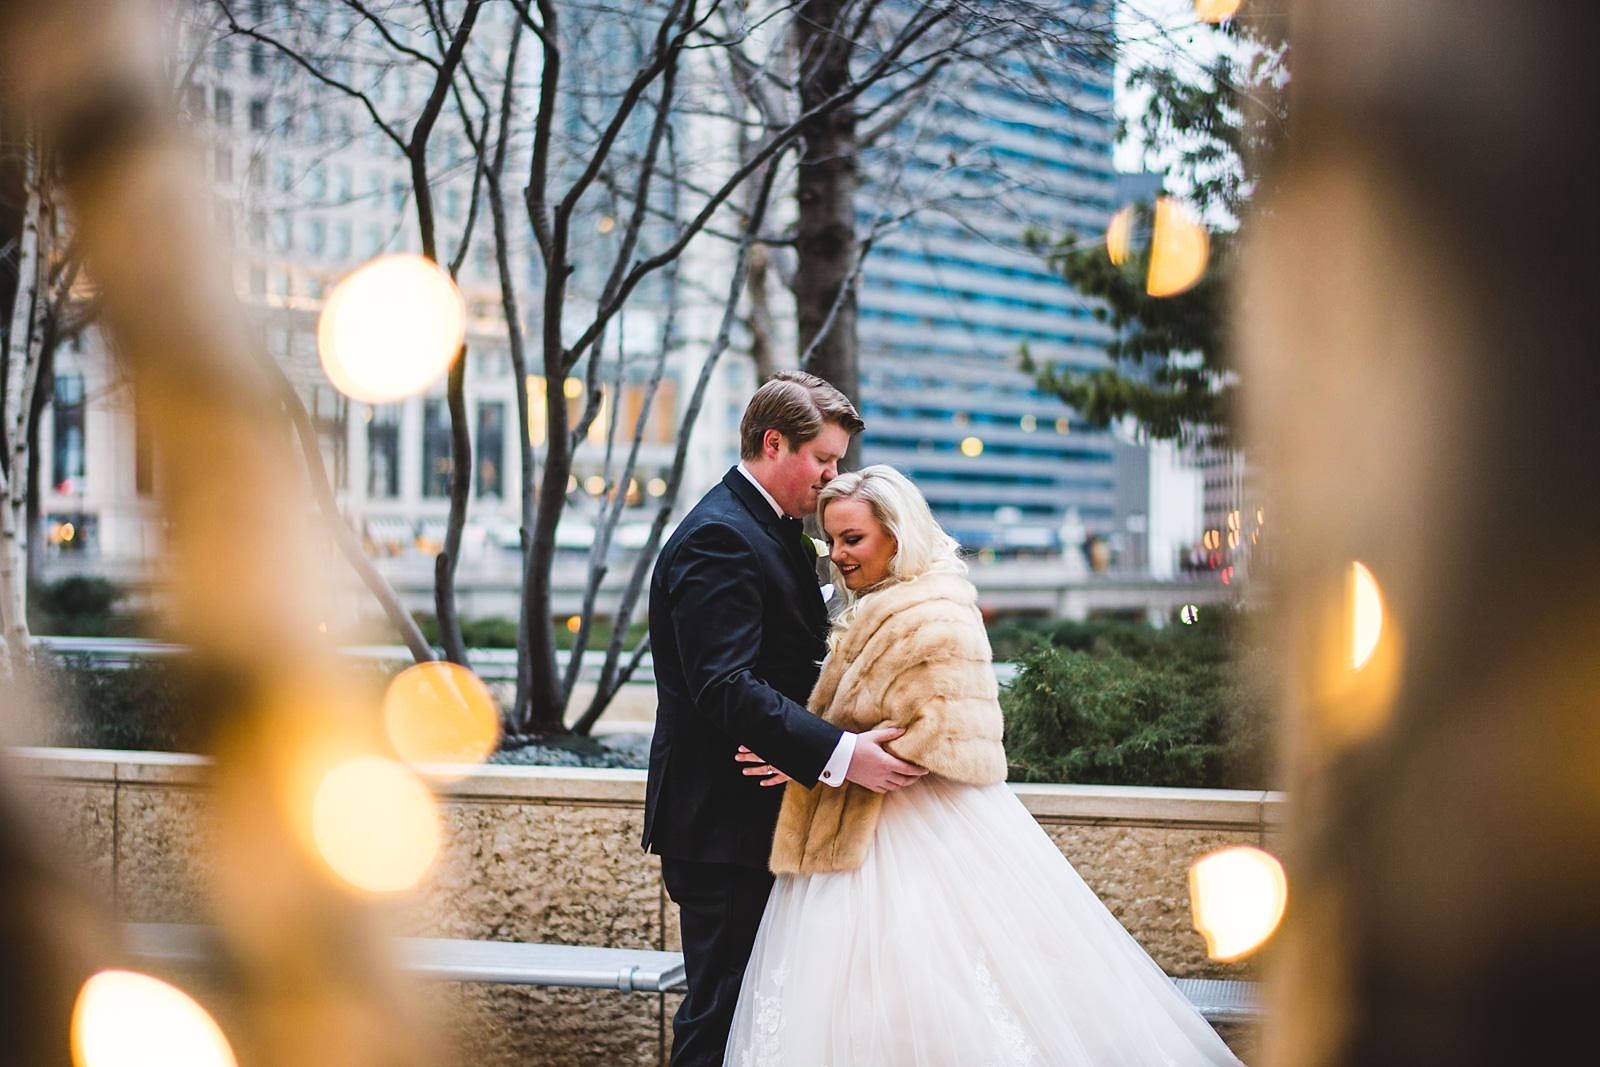 17 winter wedding photos in chiago - Drake Chicago Luxury Wedding Photography // Kate + Royce